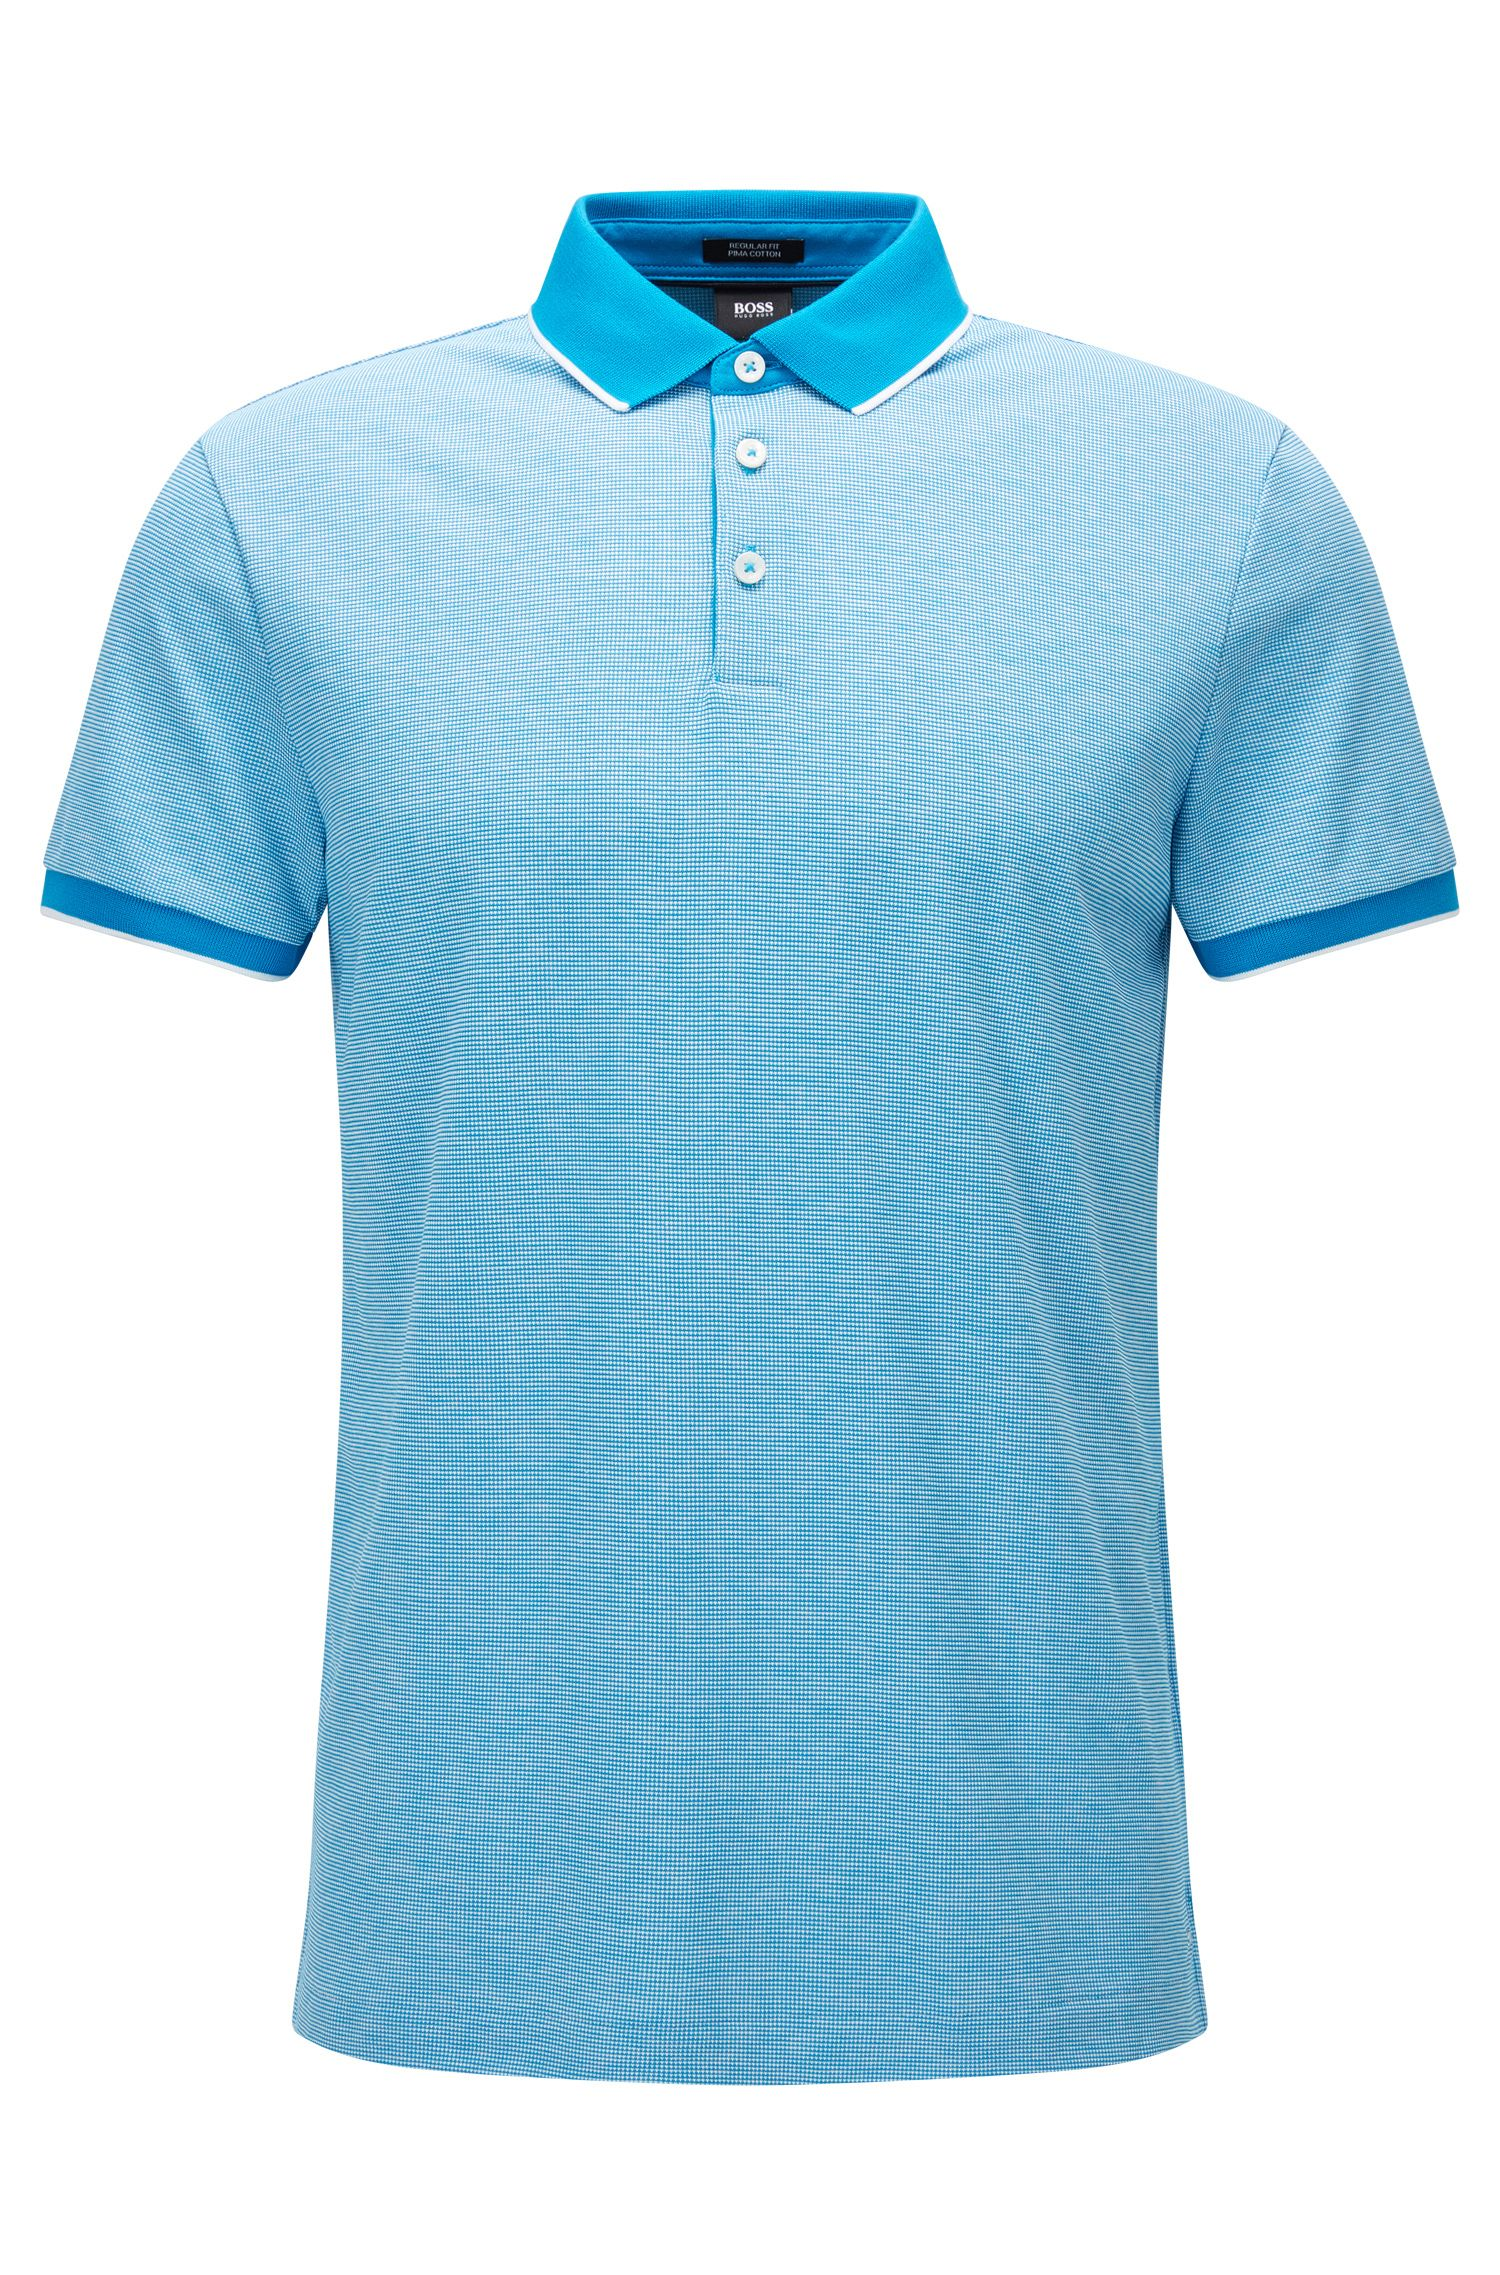 Regular-fit cotton jacquard polo shirt in micro pattern